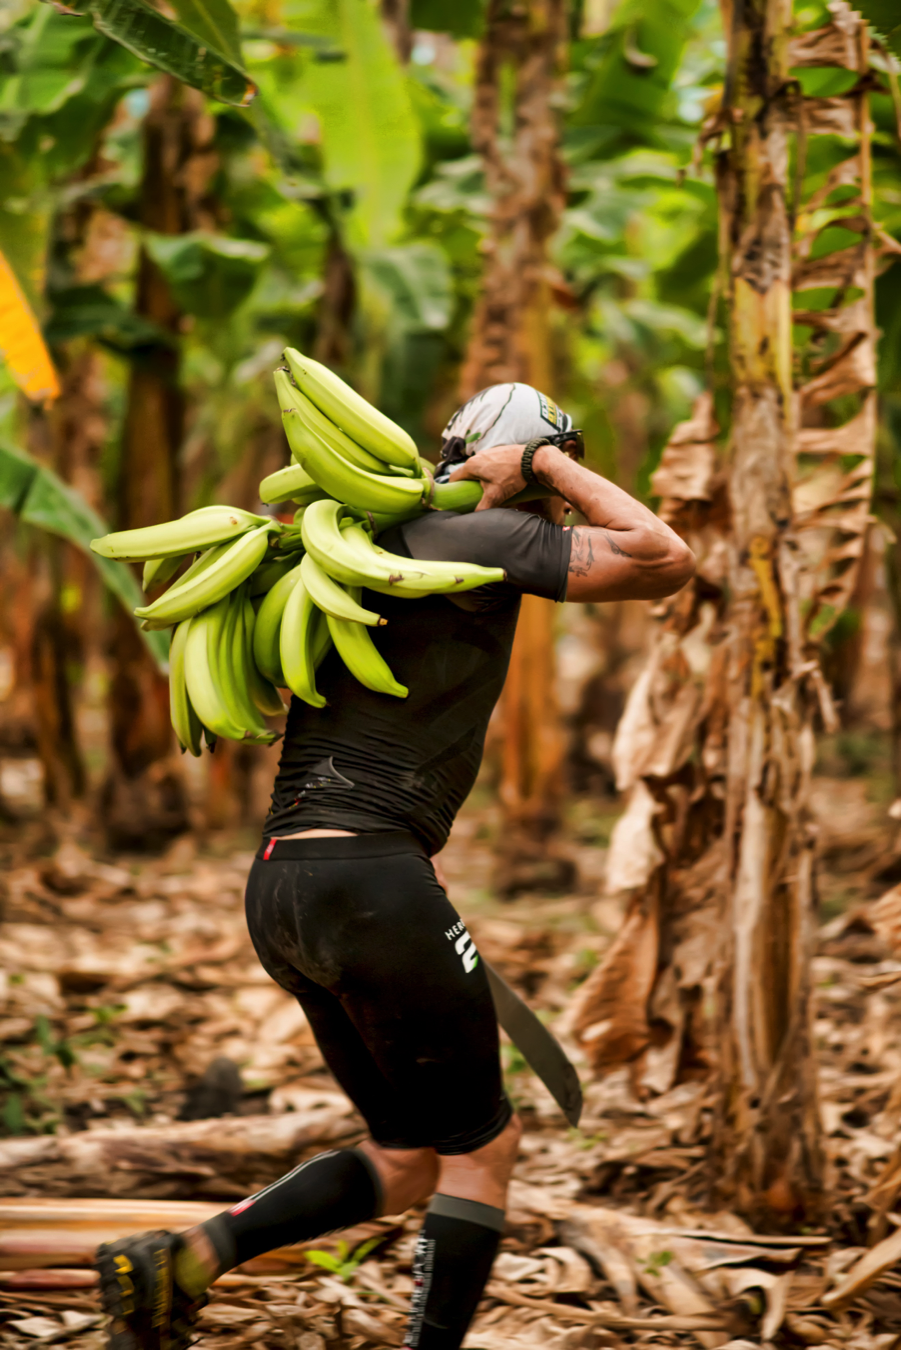 From here the racers headed to a plantain plantation to find there bib number randomly tied to a tree.  Once they found their bib they had to harvest the bunch of plantains from that tree.